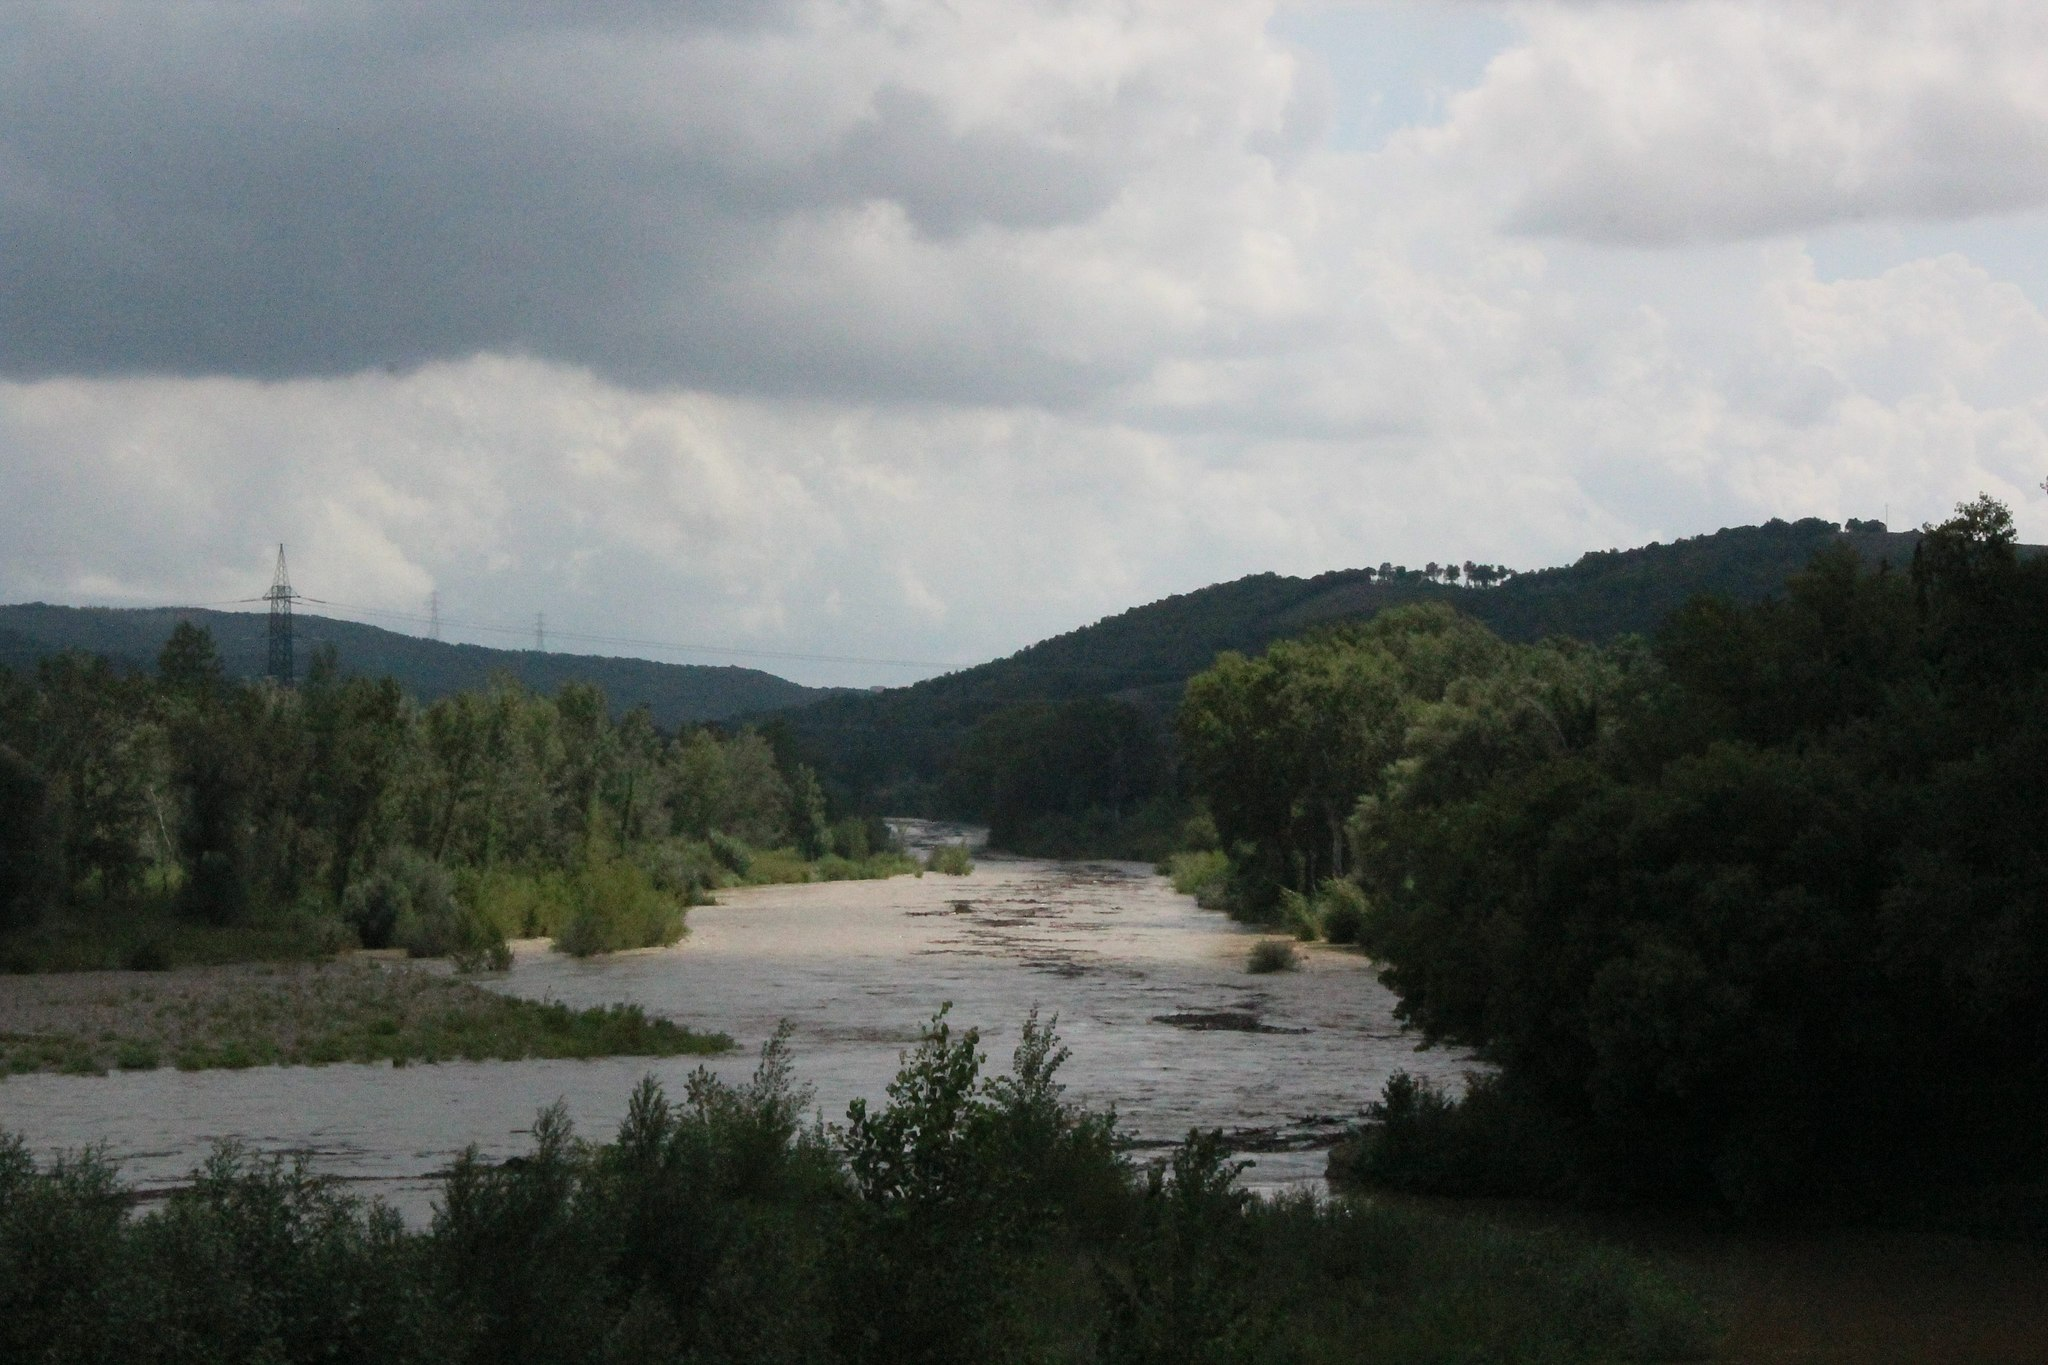 The Ombrone River in Paganico, part of Civitella Paganico [1]